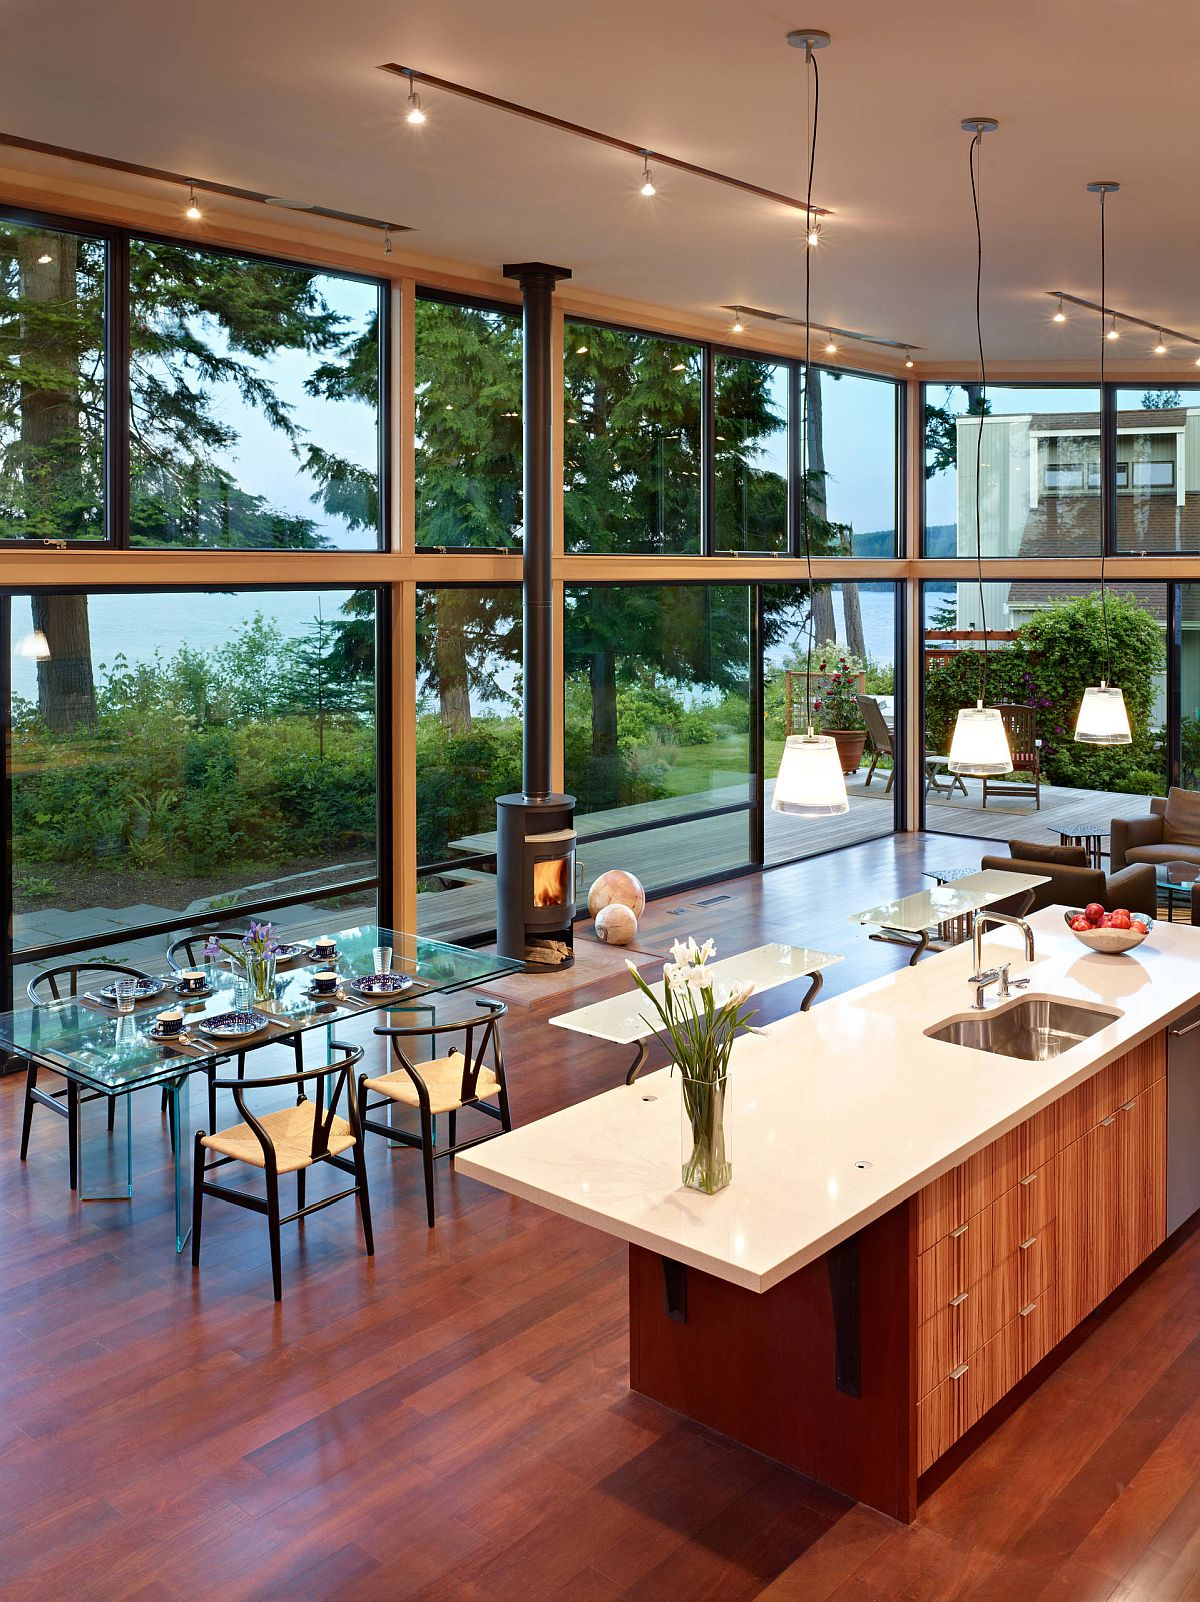 Use-glass-walls-to-usher-in-freshness-and-ample-natural-light-13377